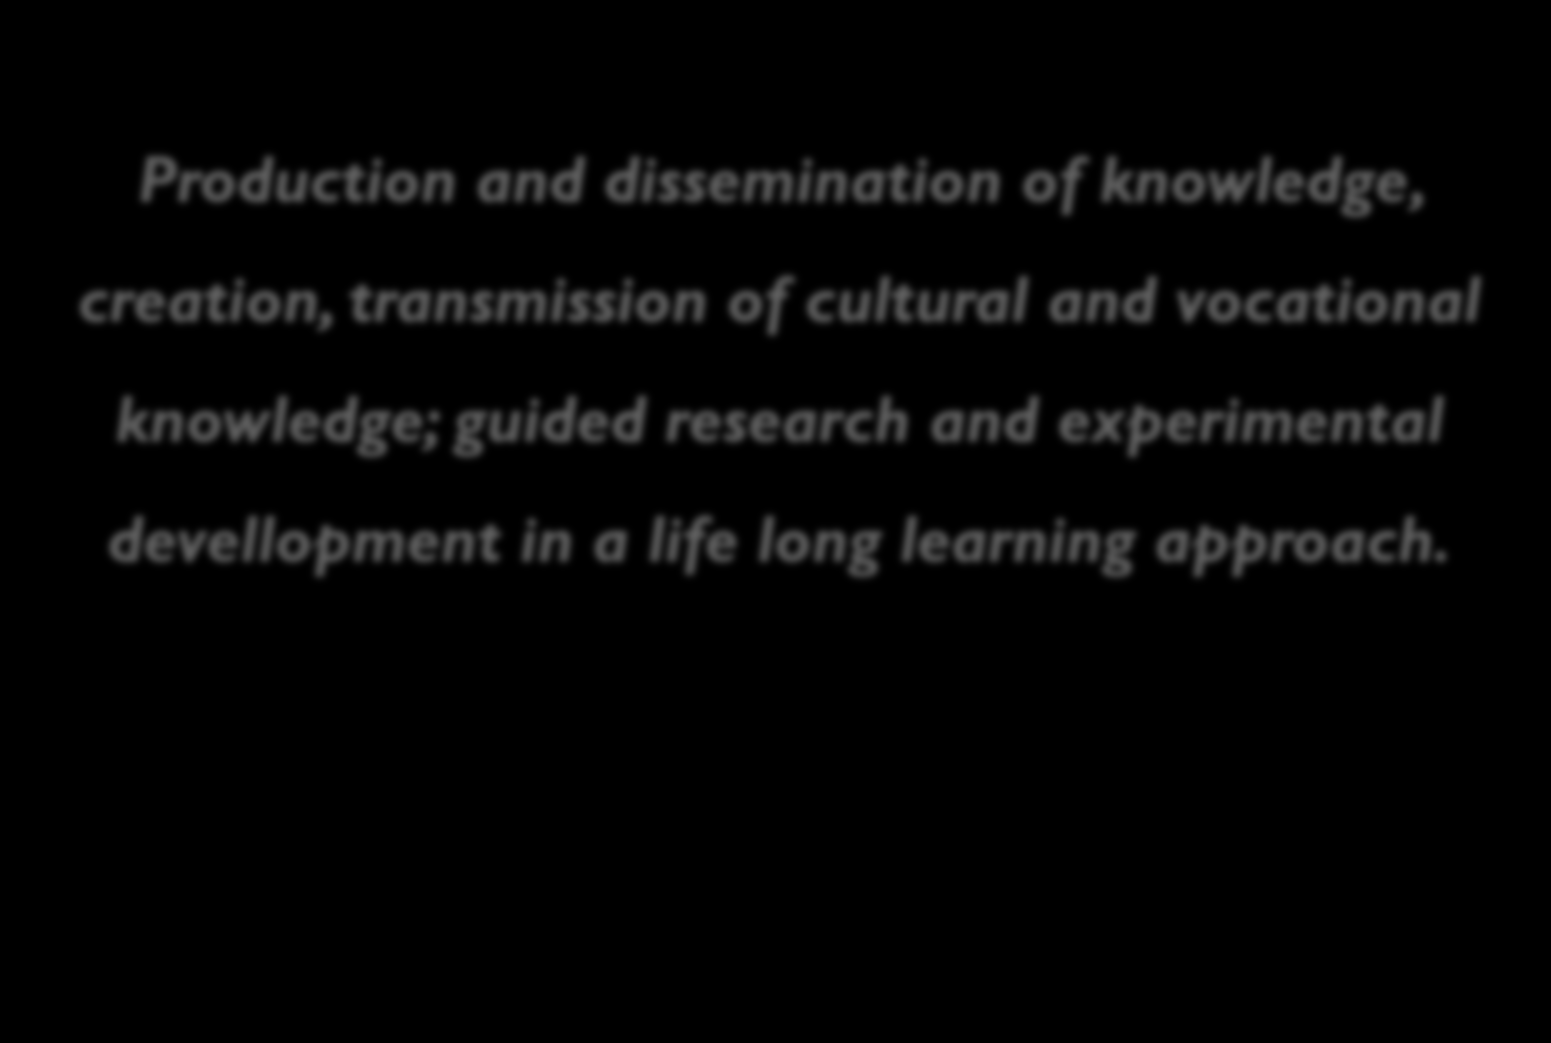 Mission Production and dissemination of knowledge, creation, transmission of cultural and